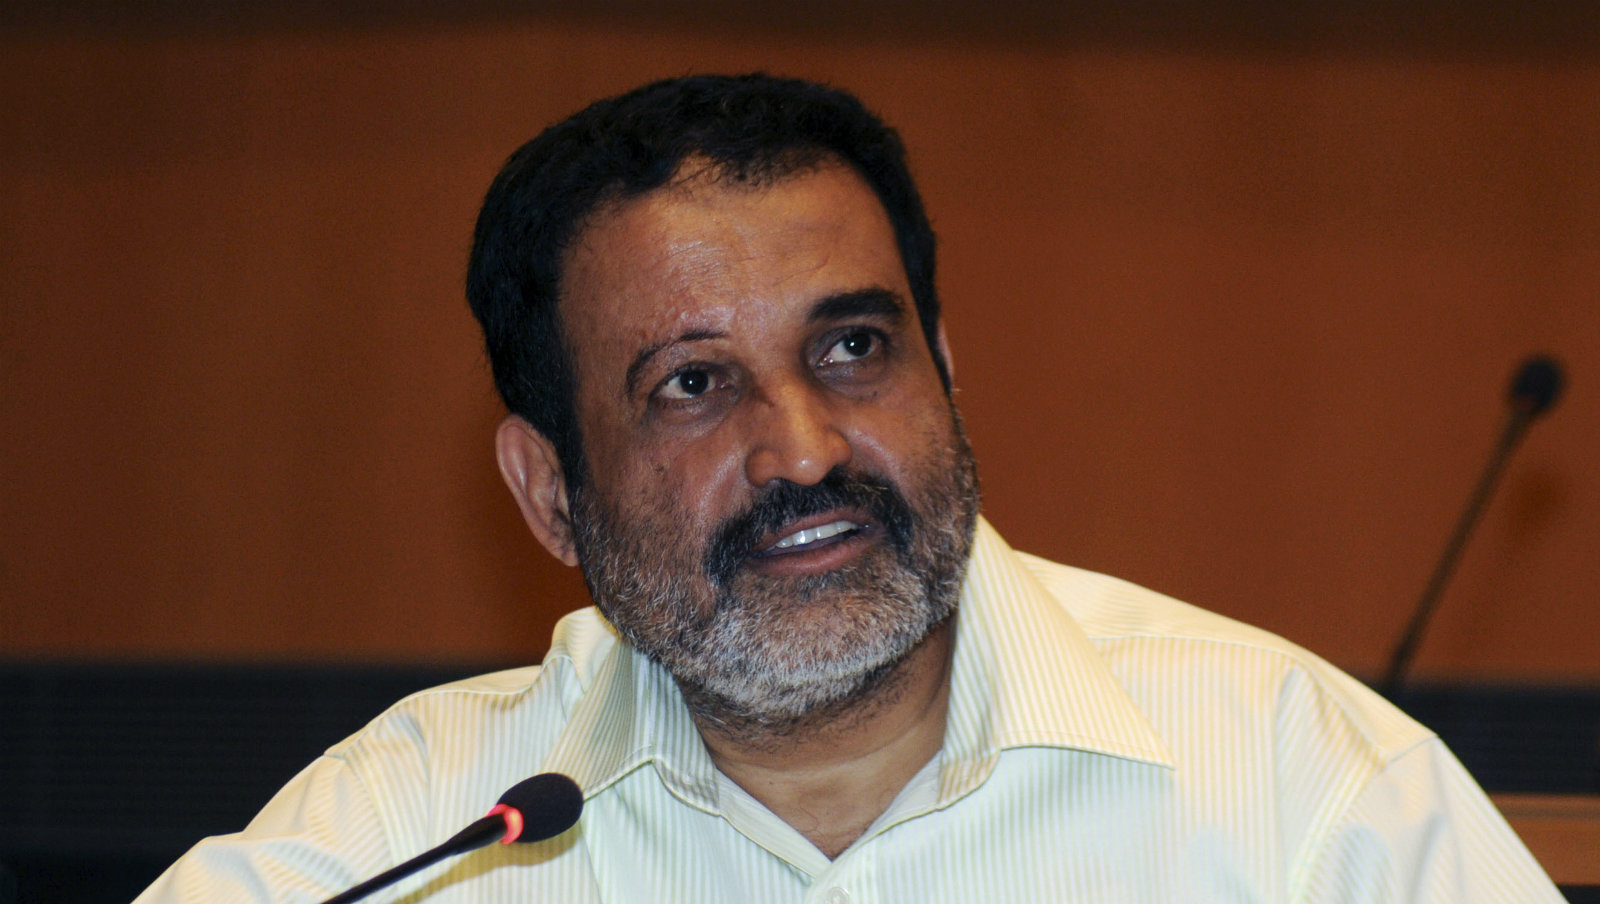 Infosys Technologies Human Resources Chief T.V. Mohandas Pai speaks with the media after the announcement of the company's quarterly financial results in Bangalore April 15, 2011. Infosys Technologies Ltd , India's No. 2 software services exporter, sparked worries about the sector's growth after it forecast annual sales lower than expected on slower client spending, knocking its shares down nearly 10 percent. Infosys said Pai, who was widely seen by analysts as the only non-founder who could become CEO, quit on Friday.